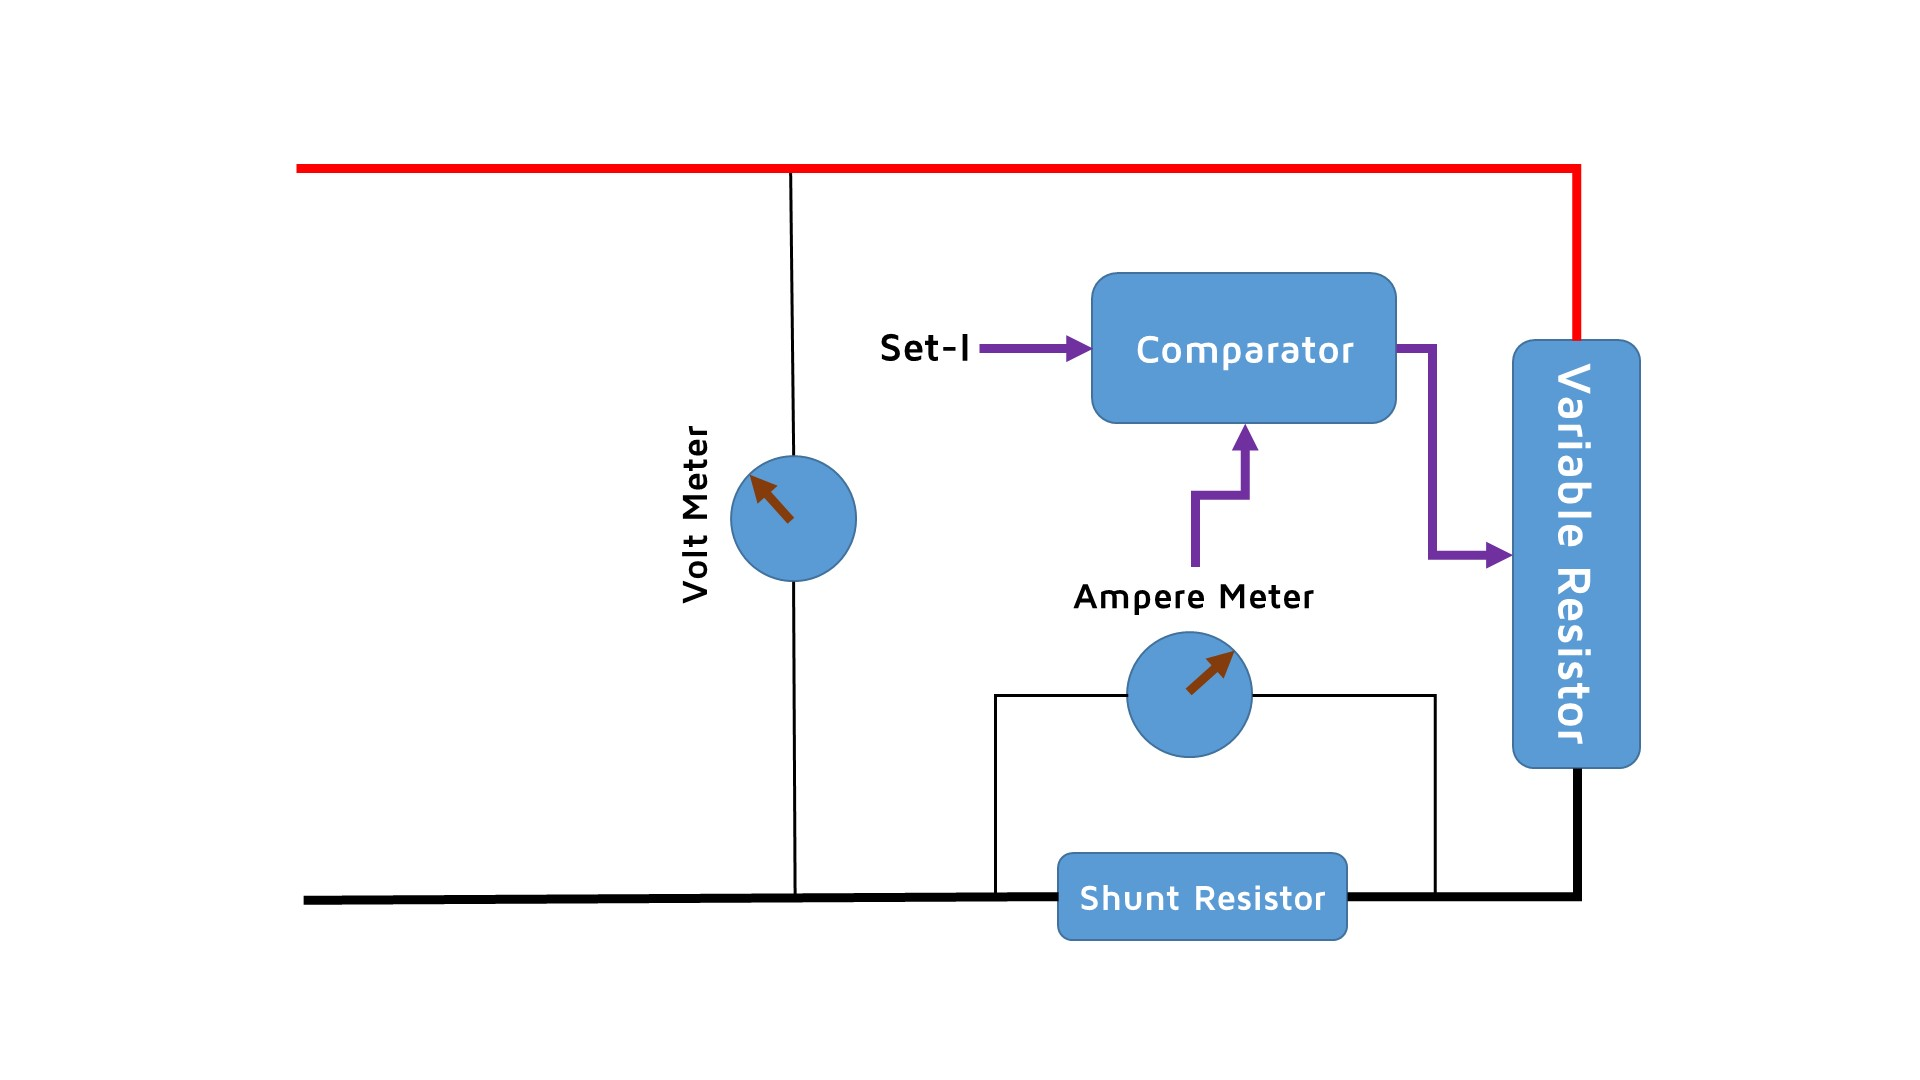 Hardware Sensorsiot How To Build A Flex Sensor Circuit With Voltage Comparator Basic Diagram Of Electronic Load